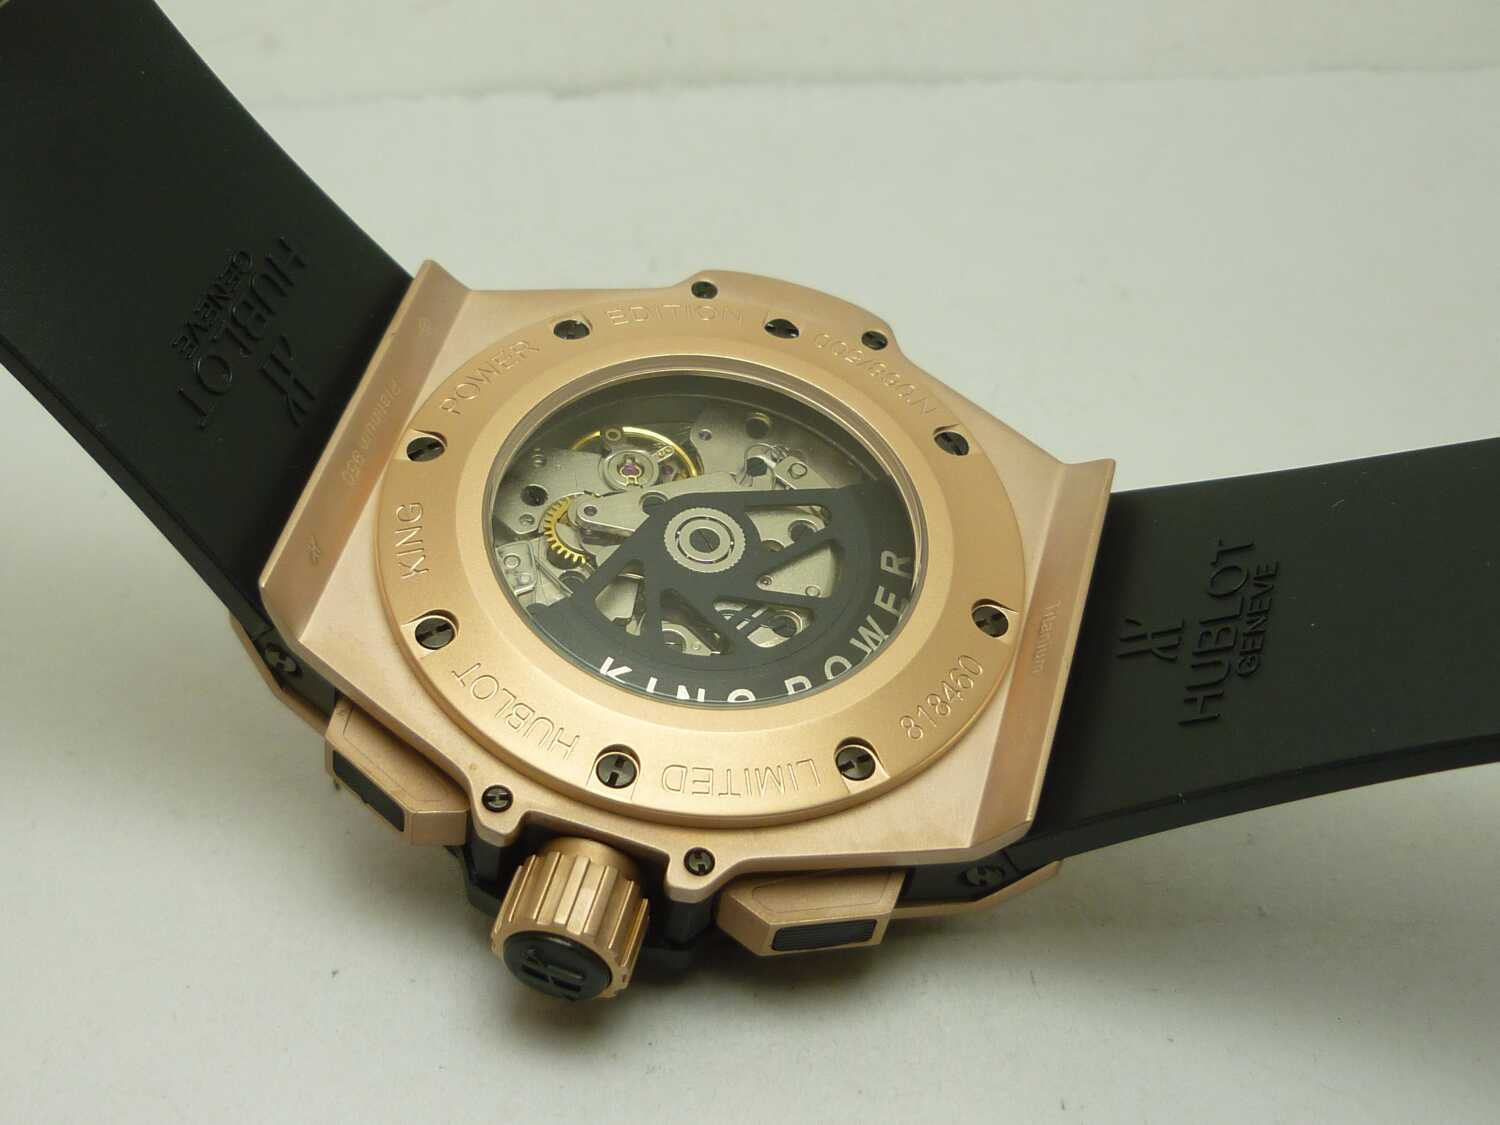 Hublot Unico Crystal Back